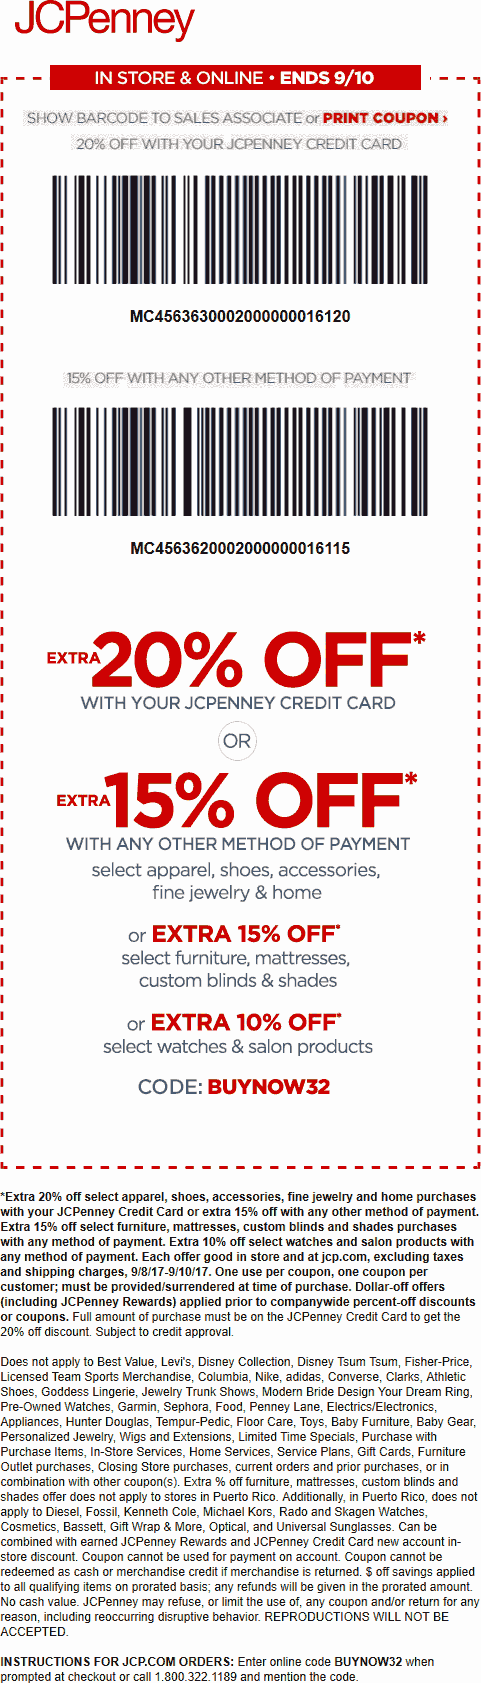 JCPenney Coupon August 2018 Extra 15% off at JCPenney, or online via promo code BUYNOW32 & 25% off $100 via SHOP34